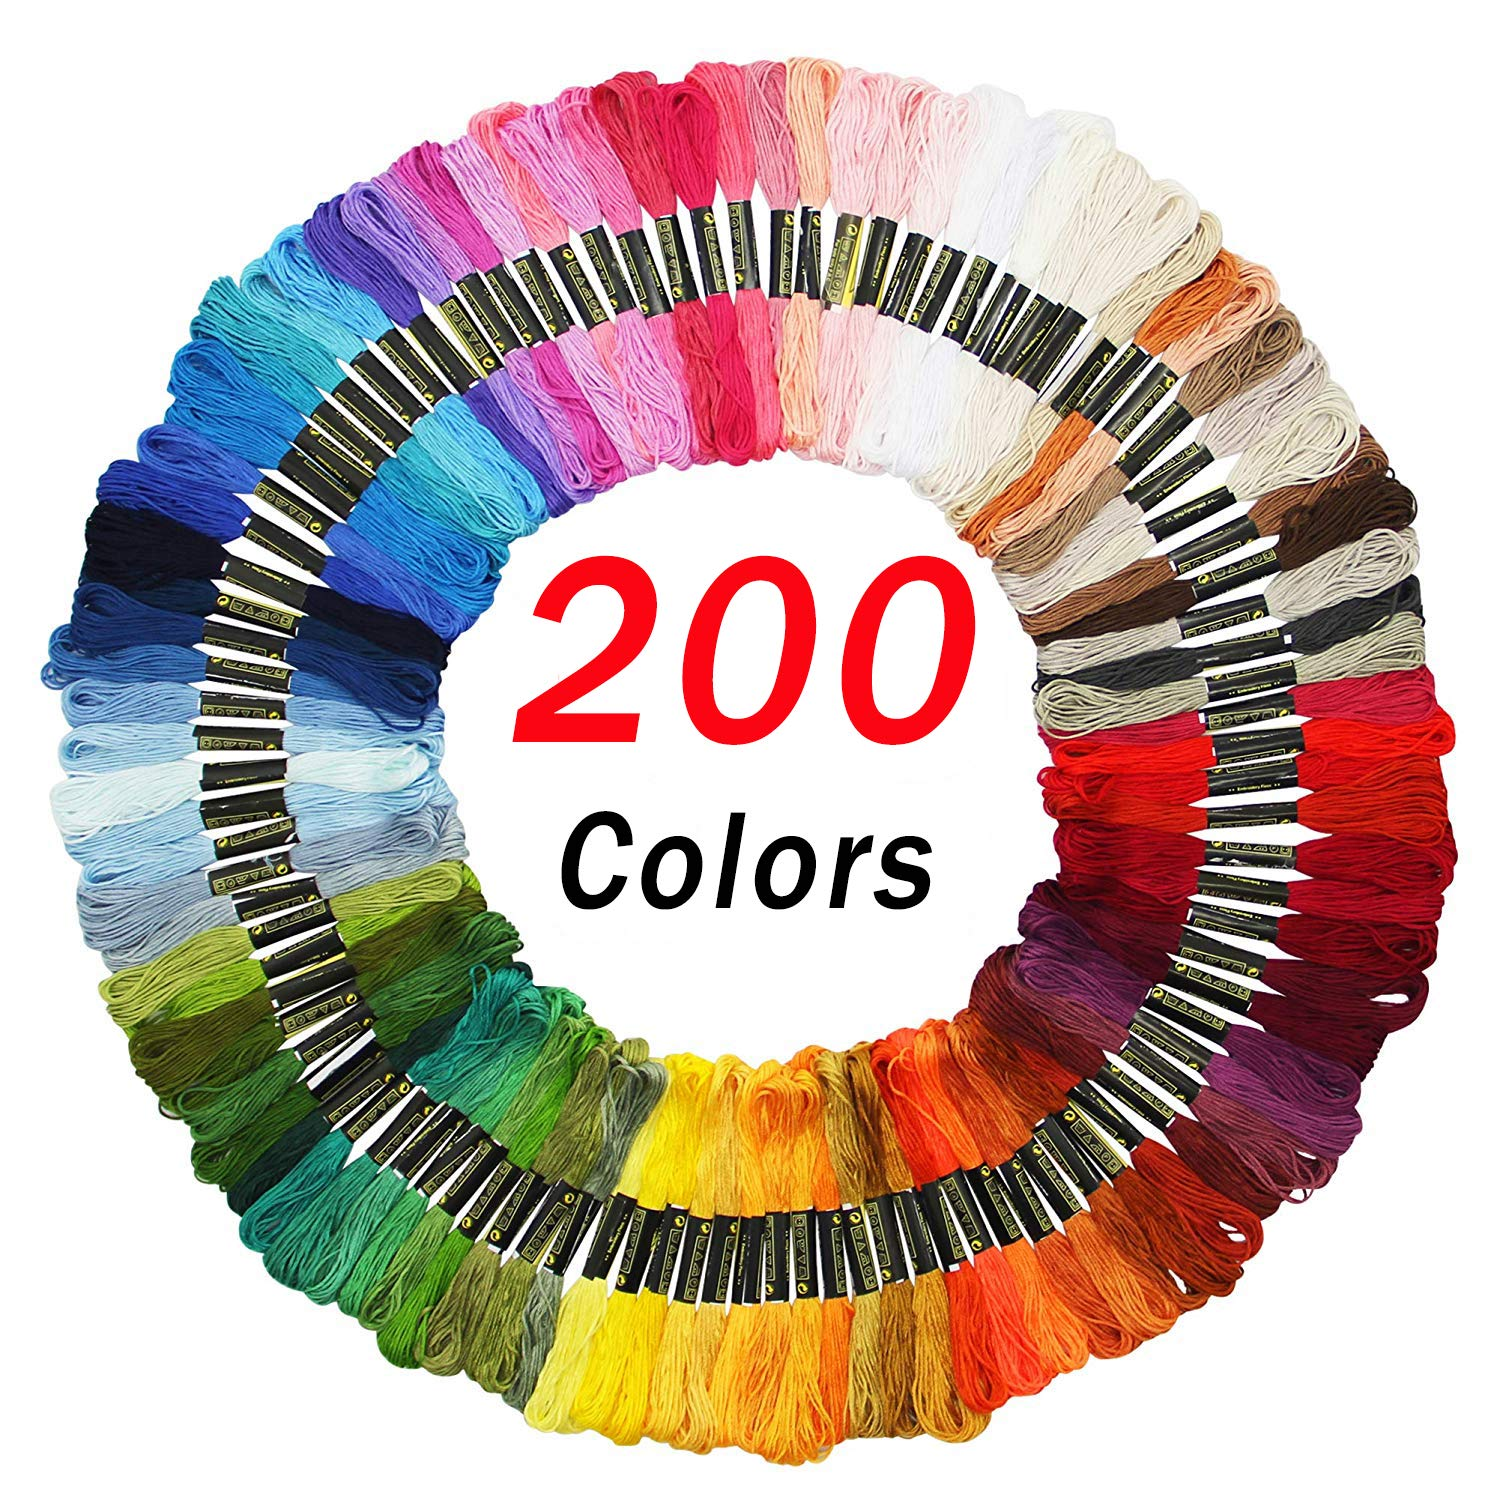 Embroidery Floss Friendship Bracelet String 100 Skeins Cross Stitch Threads with DMC Color Numbers 6 Strands 8.75 Yard